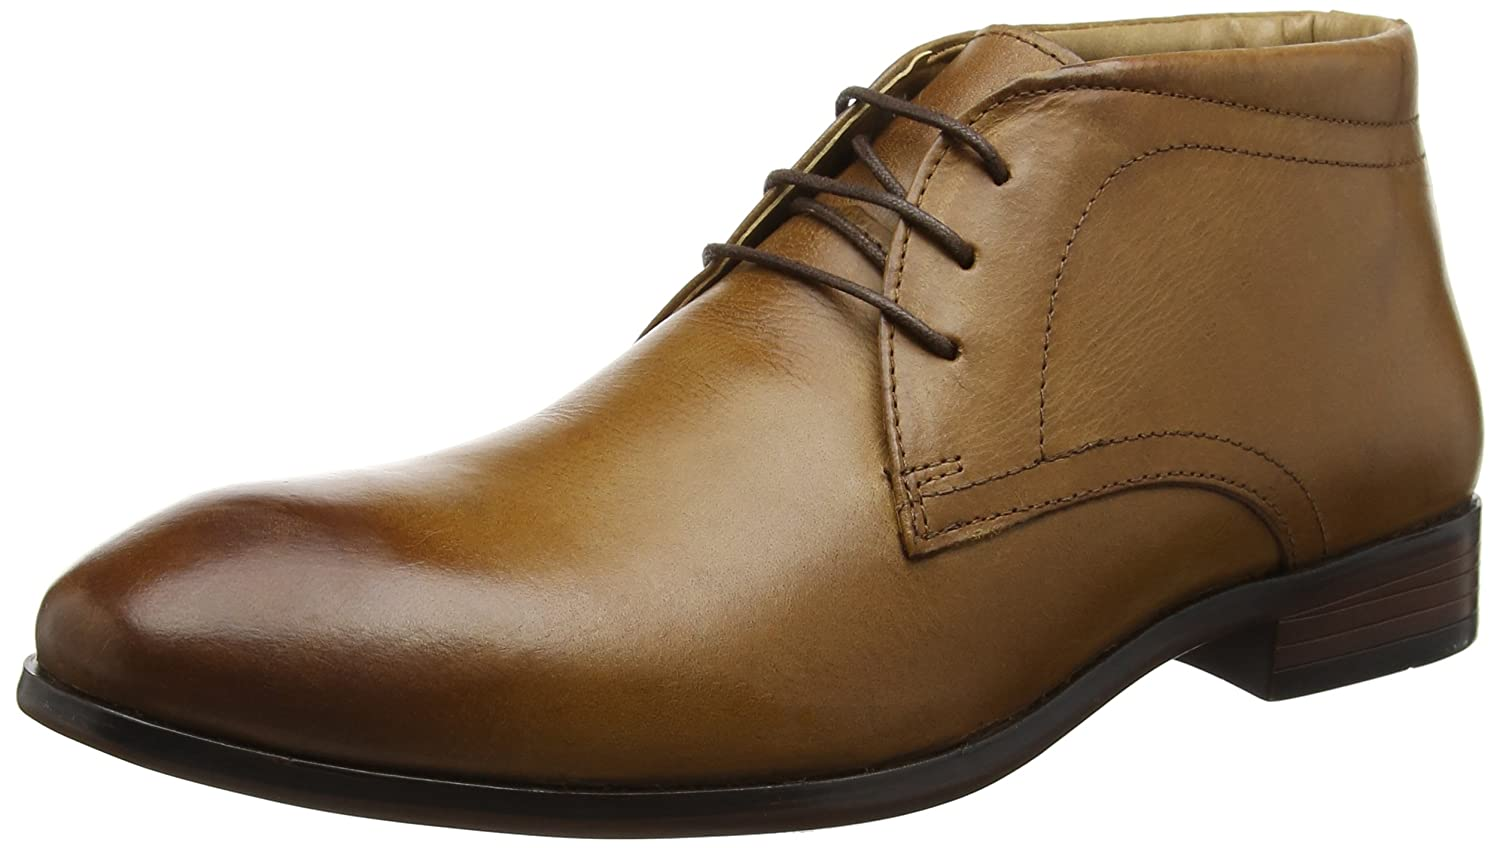 TALLA 8 UK EU. REK69|#Red Tape Calcot, Botas Chukka para Hombre